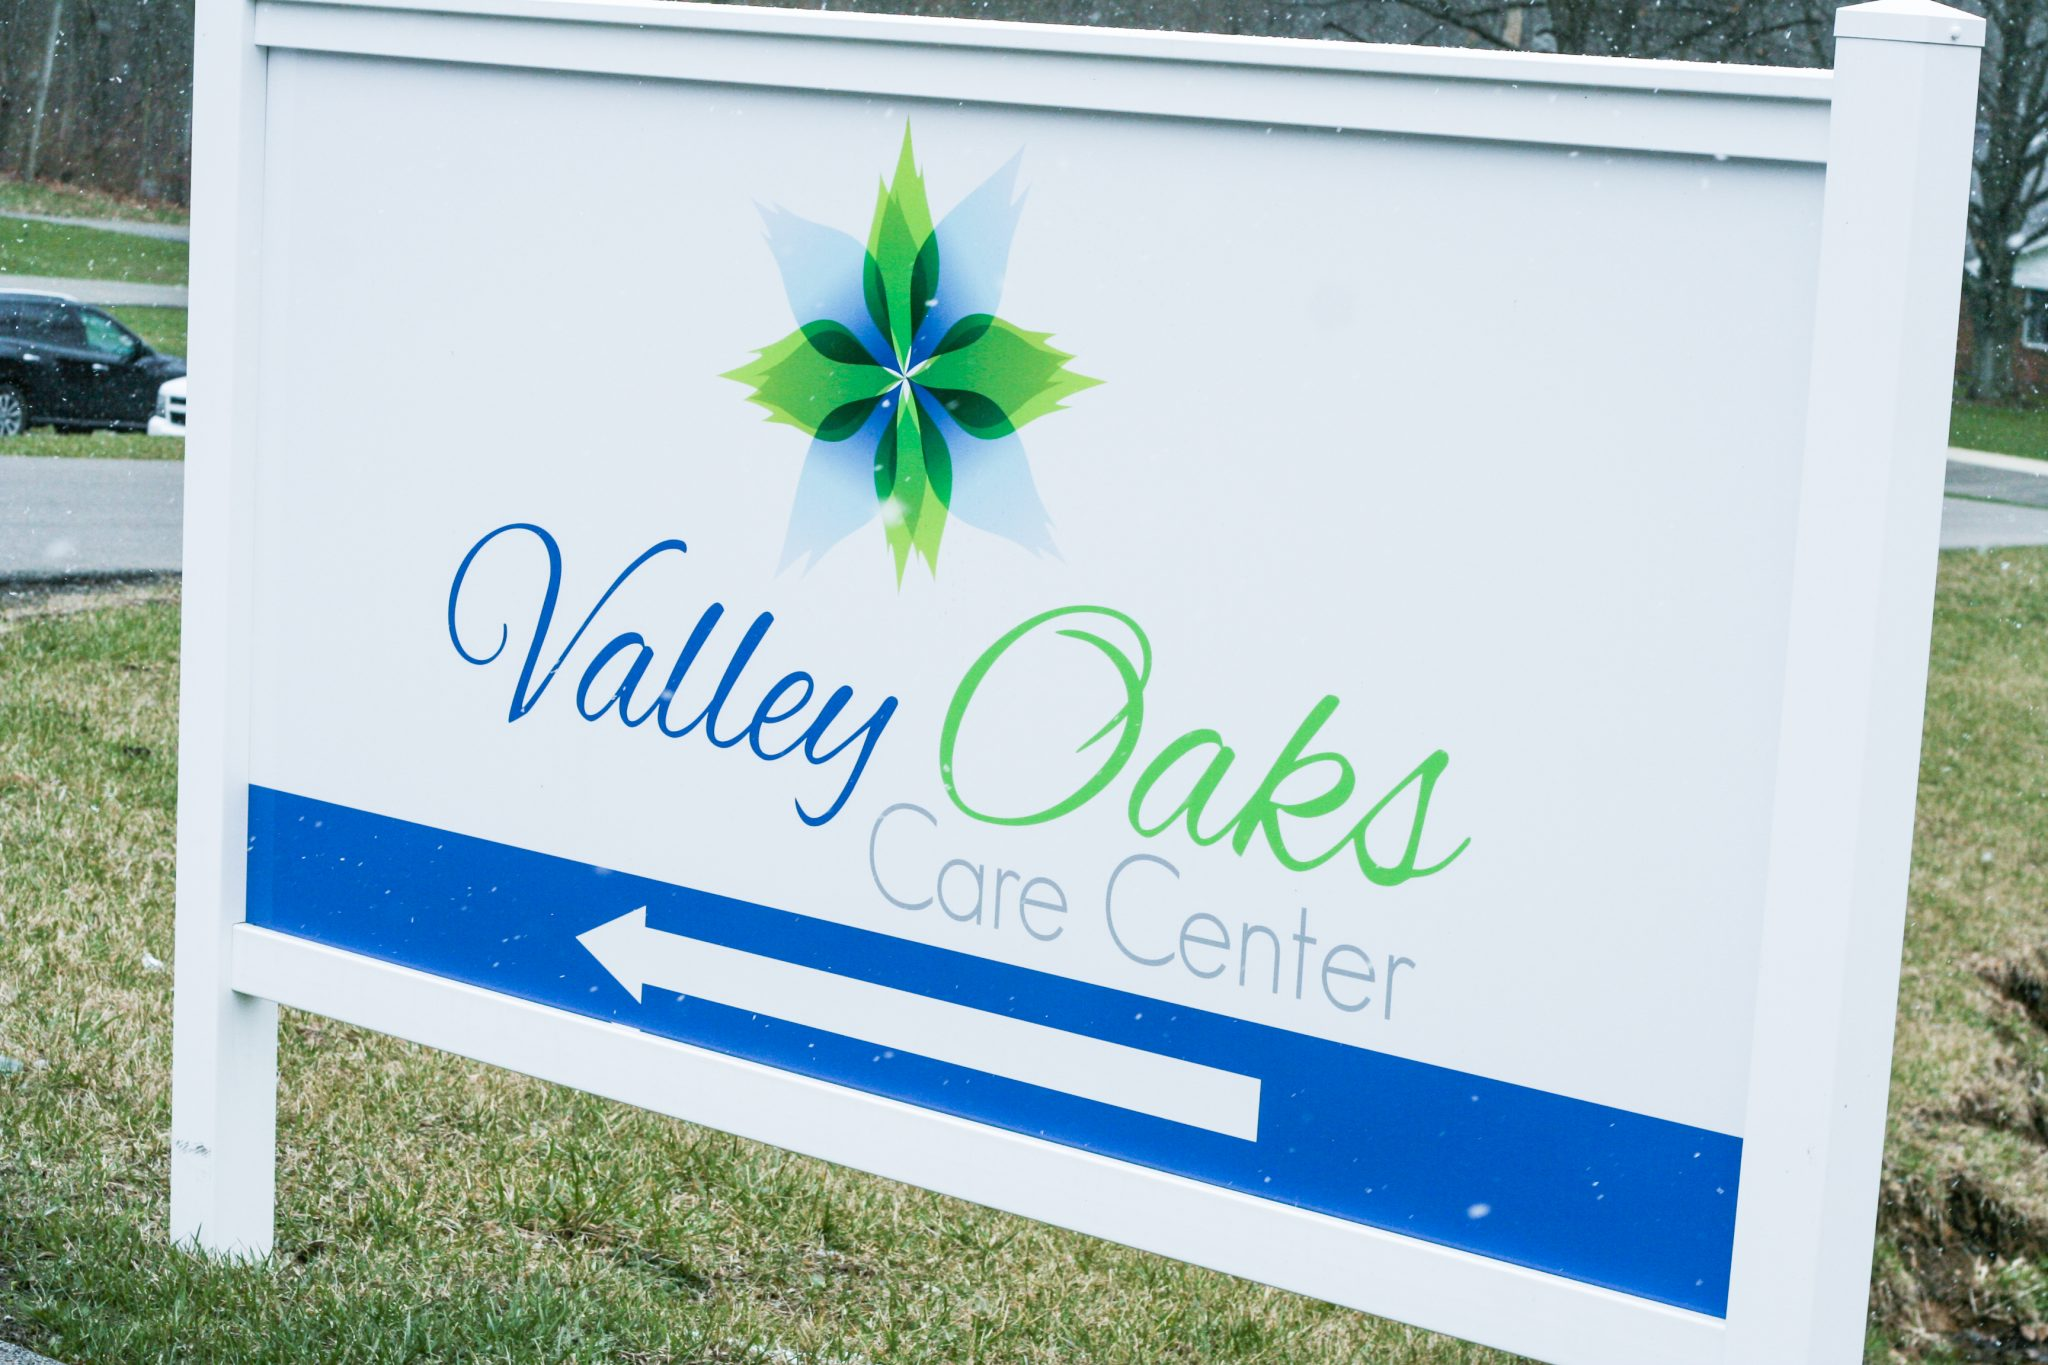 Valley Oaks Care Center image 1